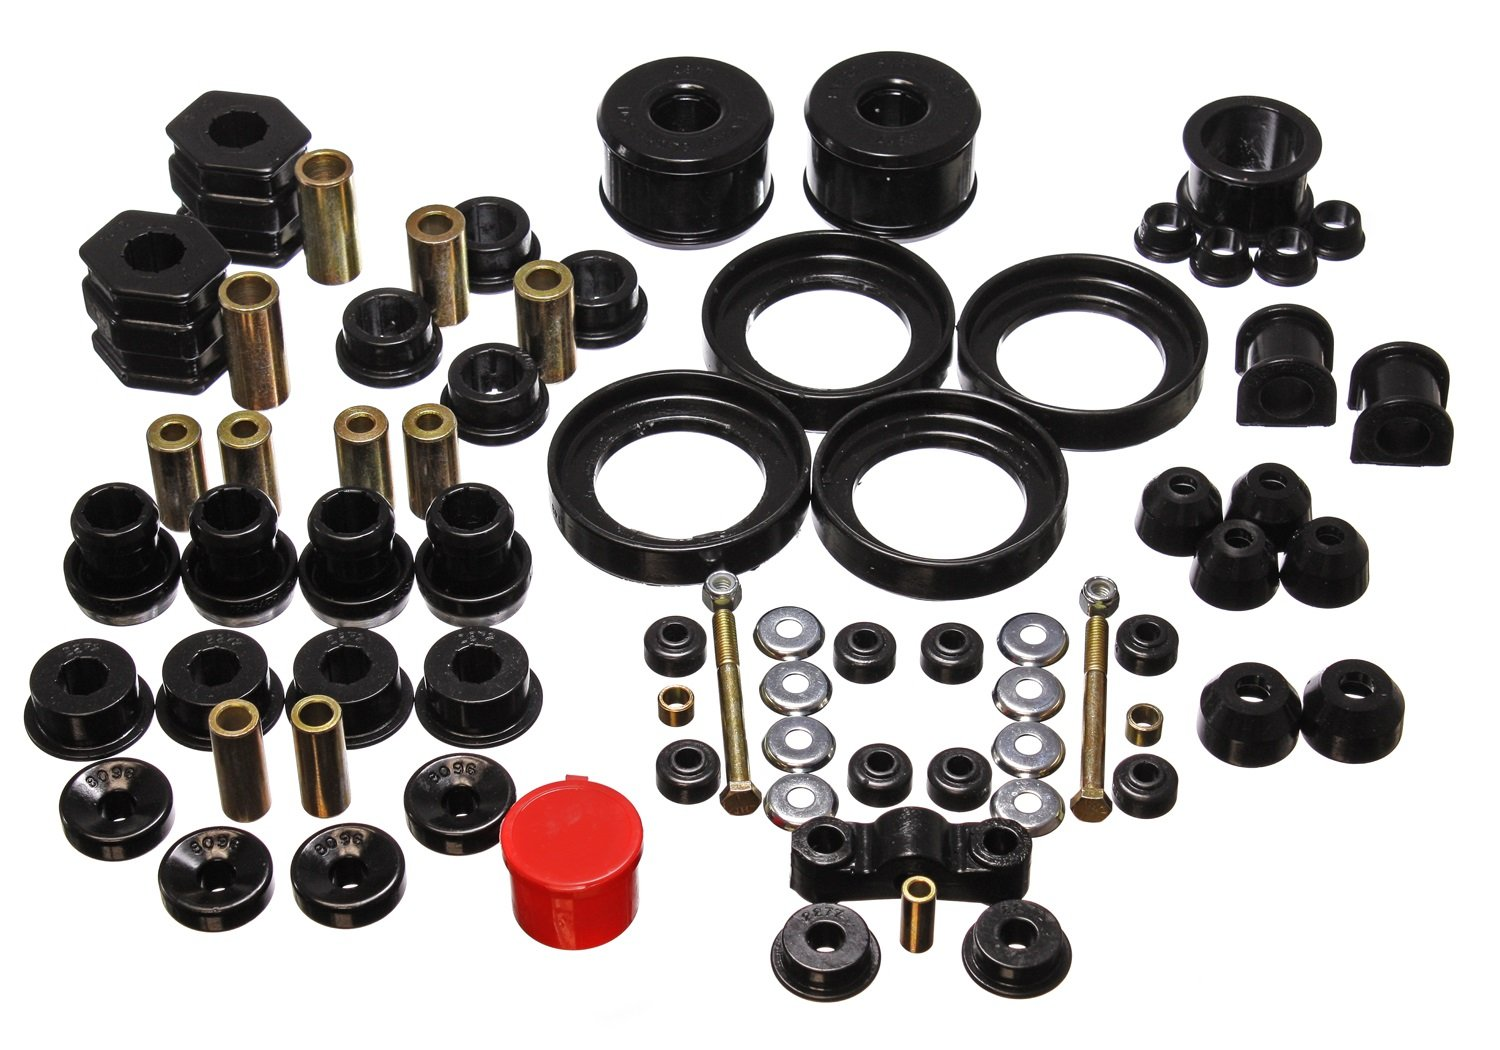 Energy Suspension 16.18110G Master Set for Honda Civic by Energy Suspension